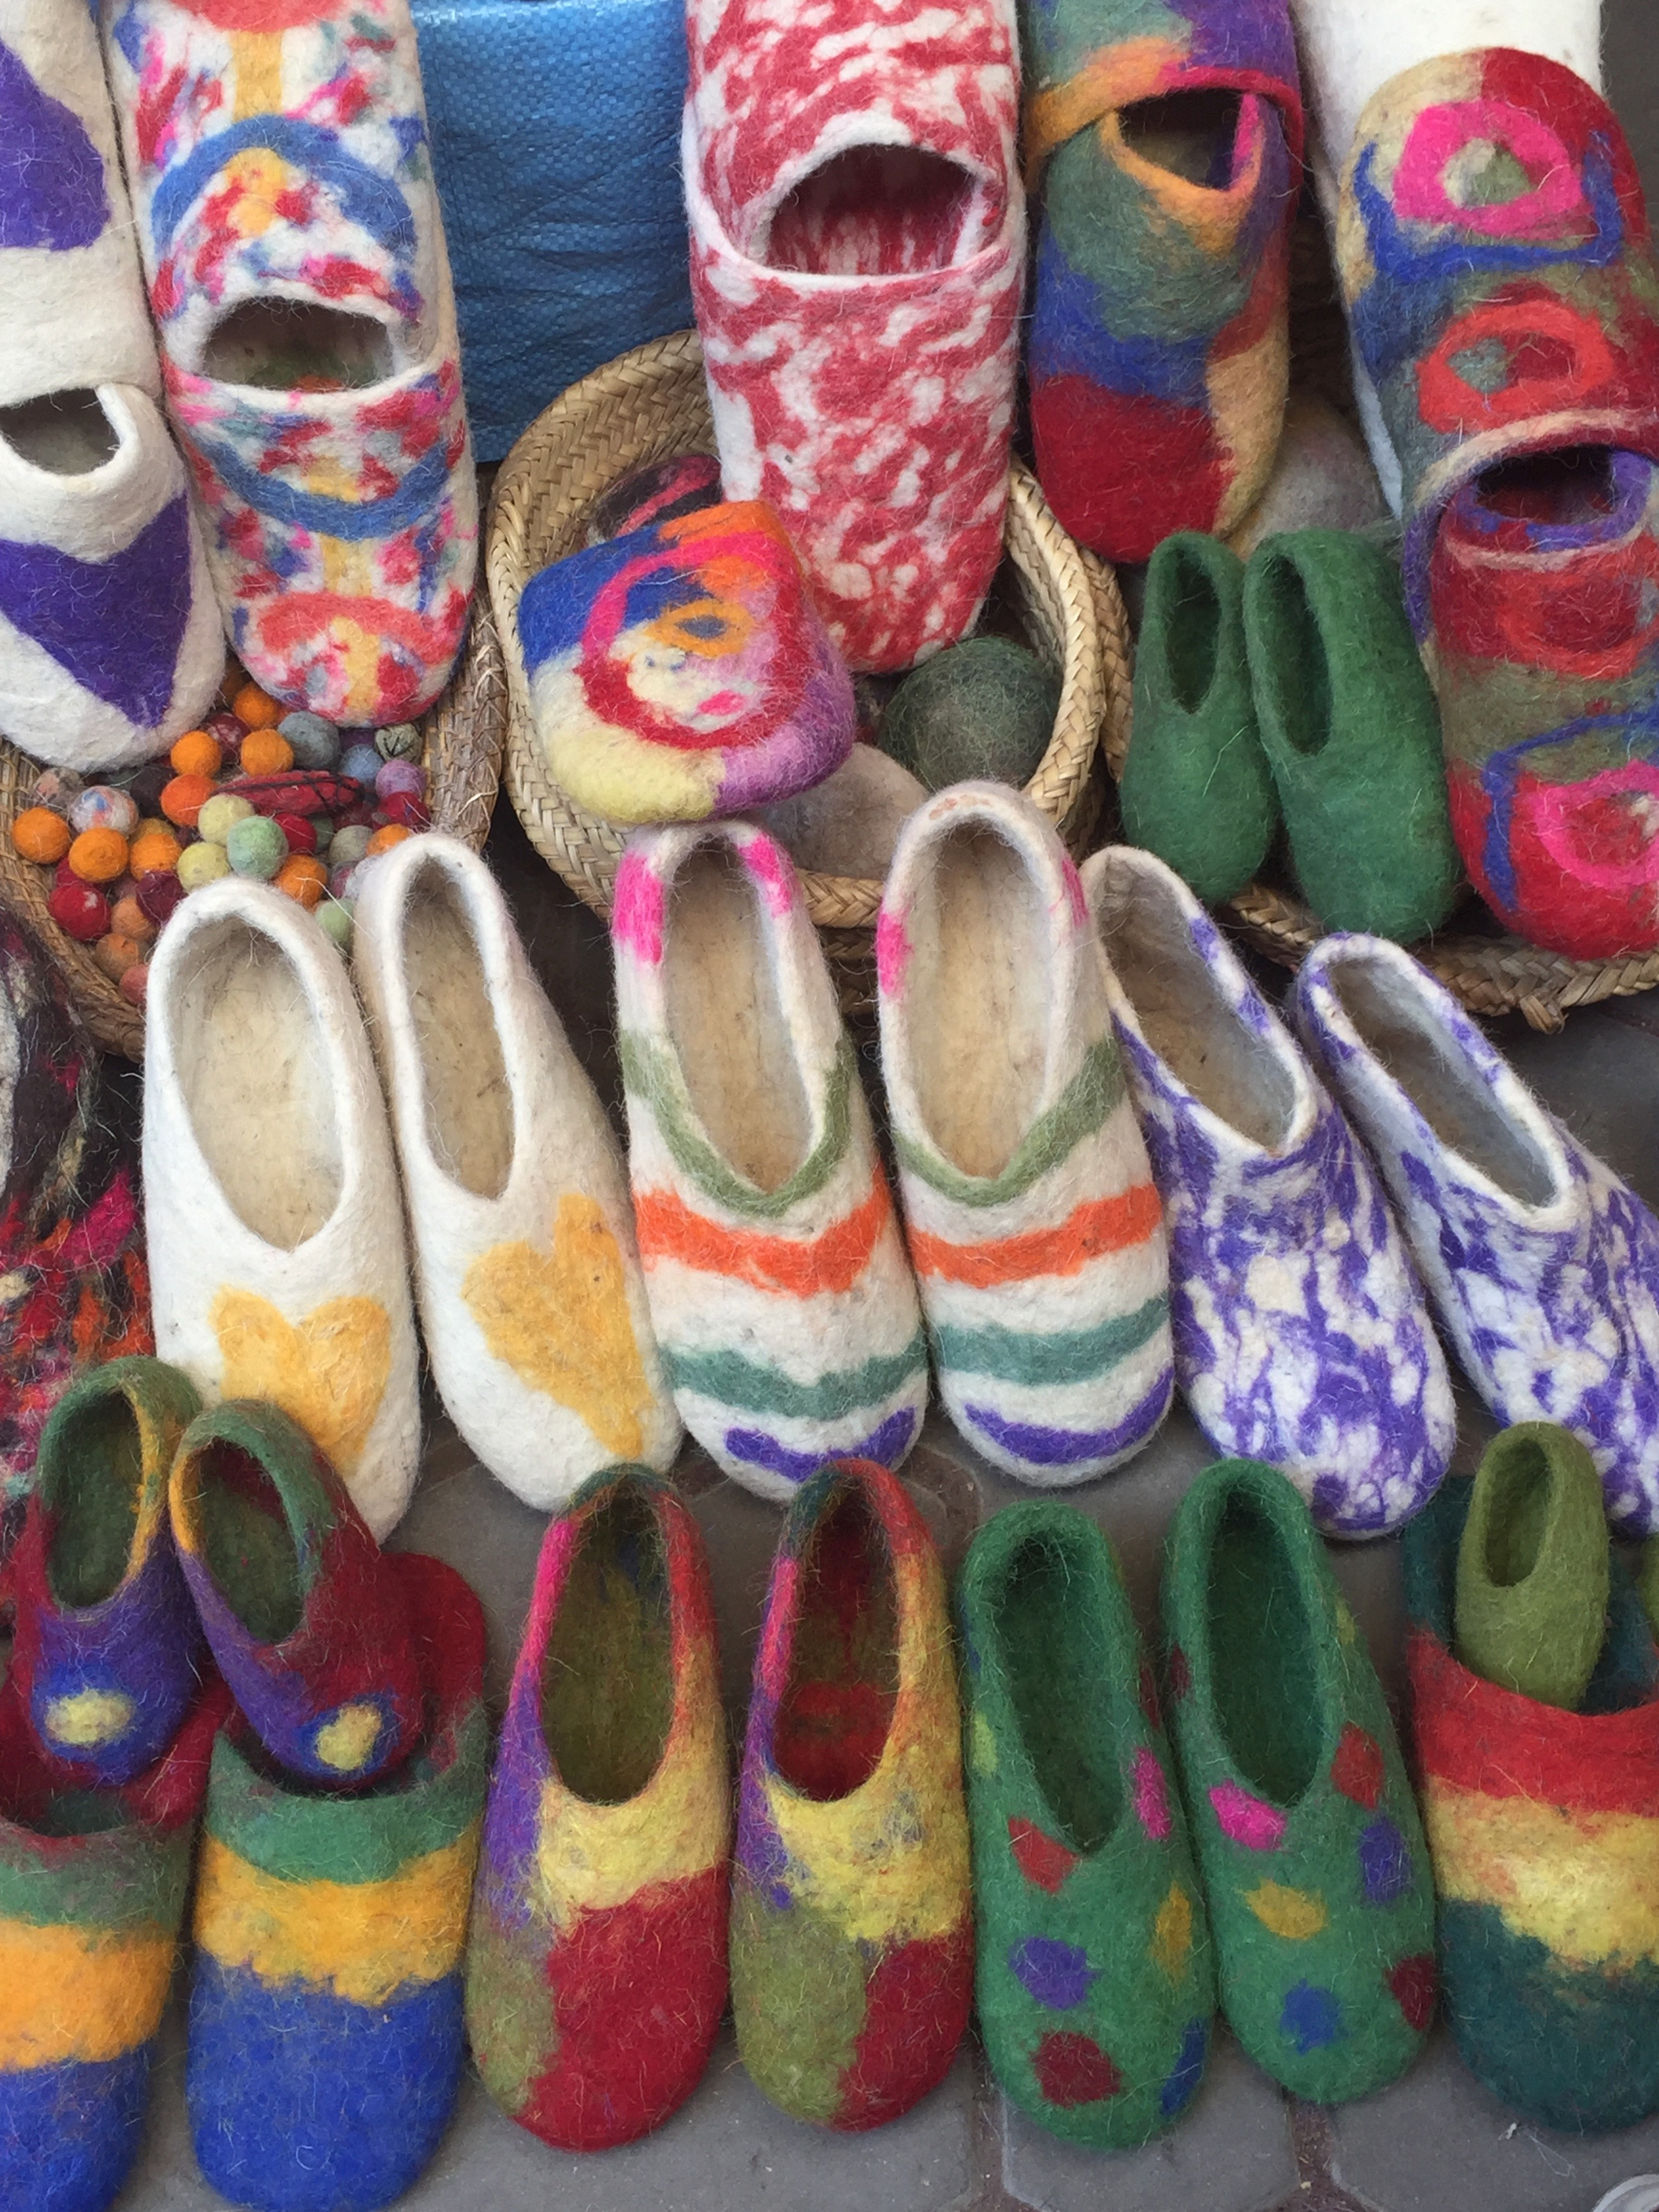 Modern felted slippers in Fes medina souk.